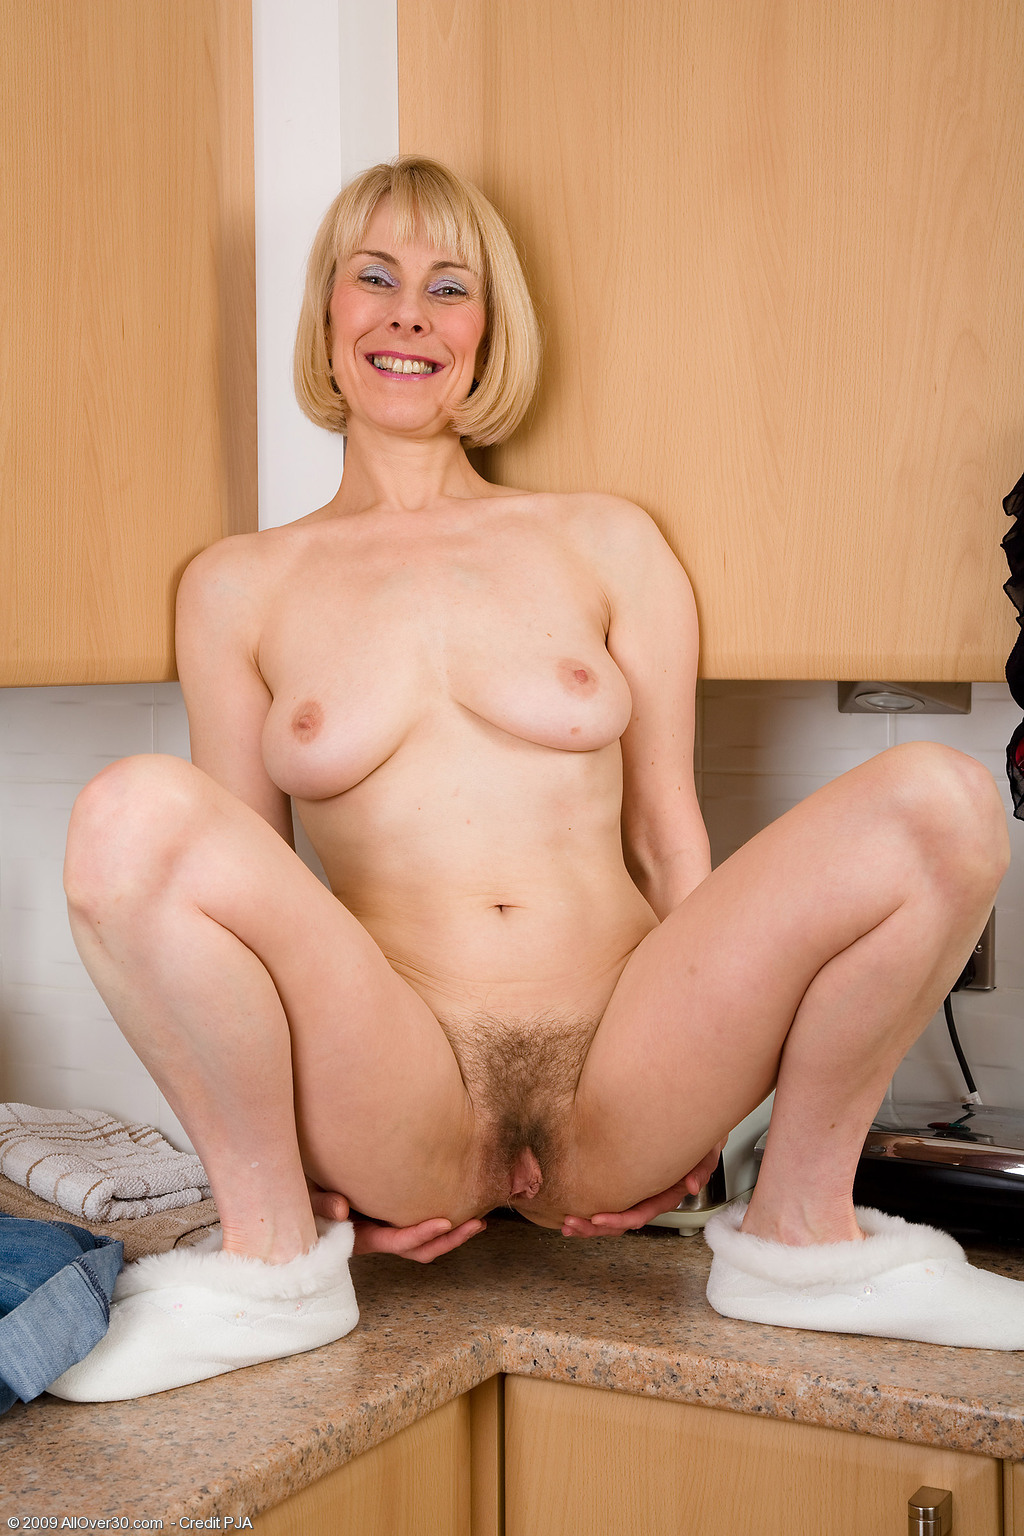 Milf blonde stripped